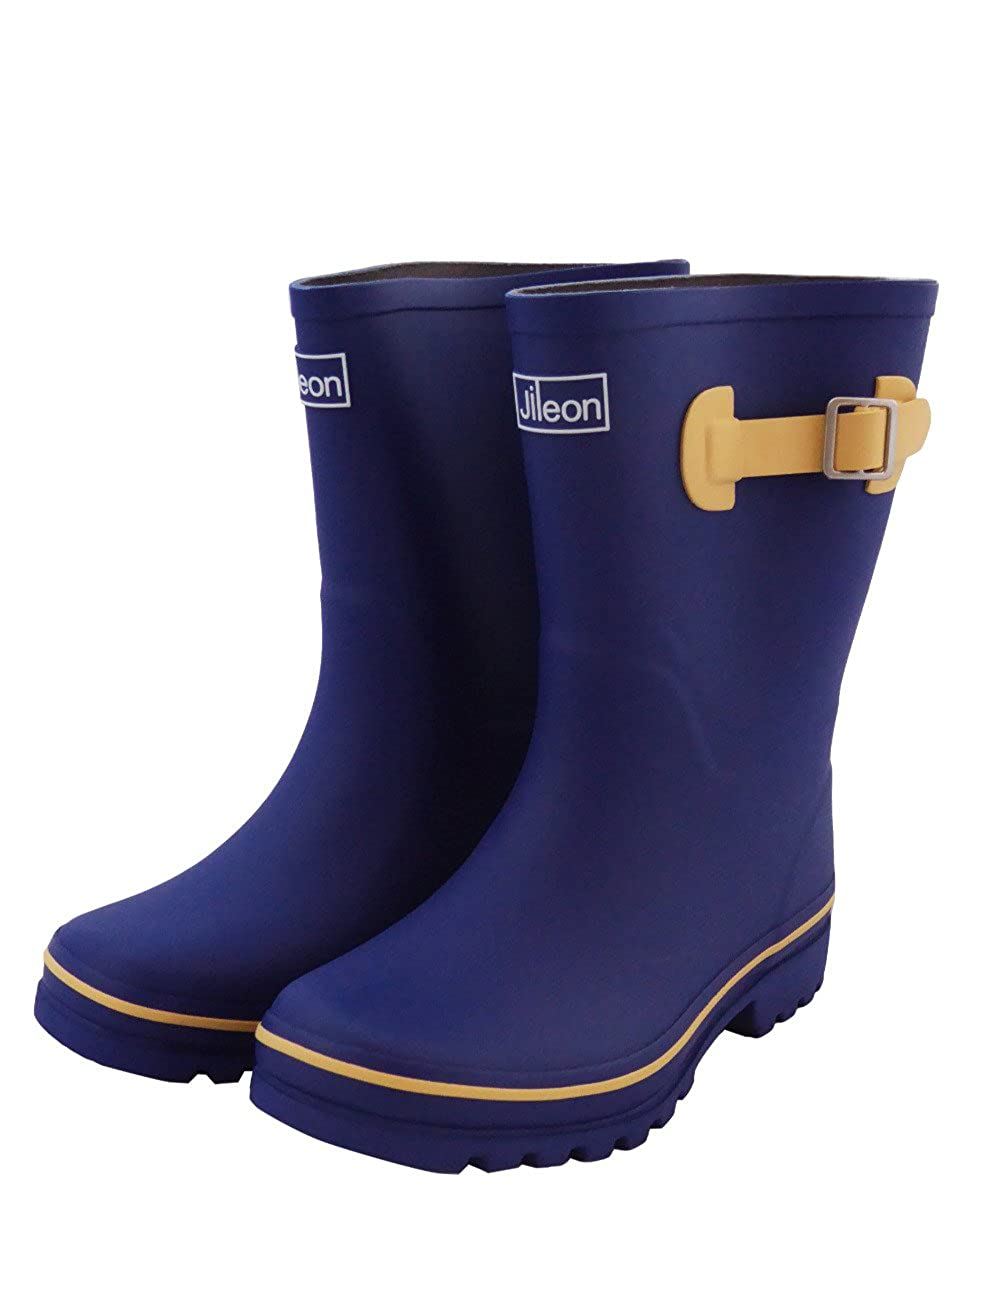 729e3538e4a Jileon Half Height Wellies for Women-Widest Fit Boots in The UK-Wide in The  Foot and Ankle-Durable Boots for All Weathers